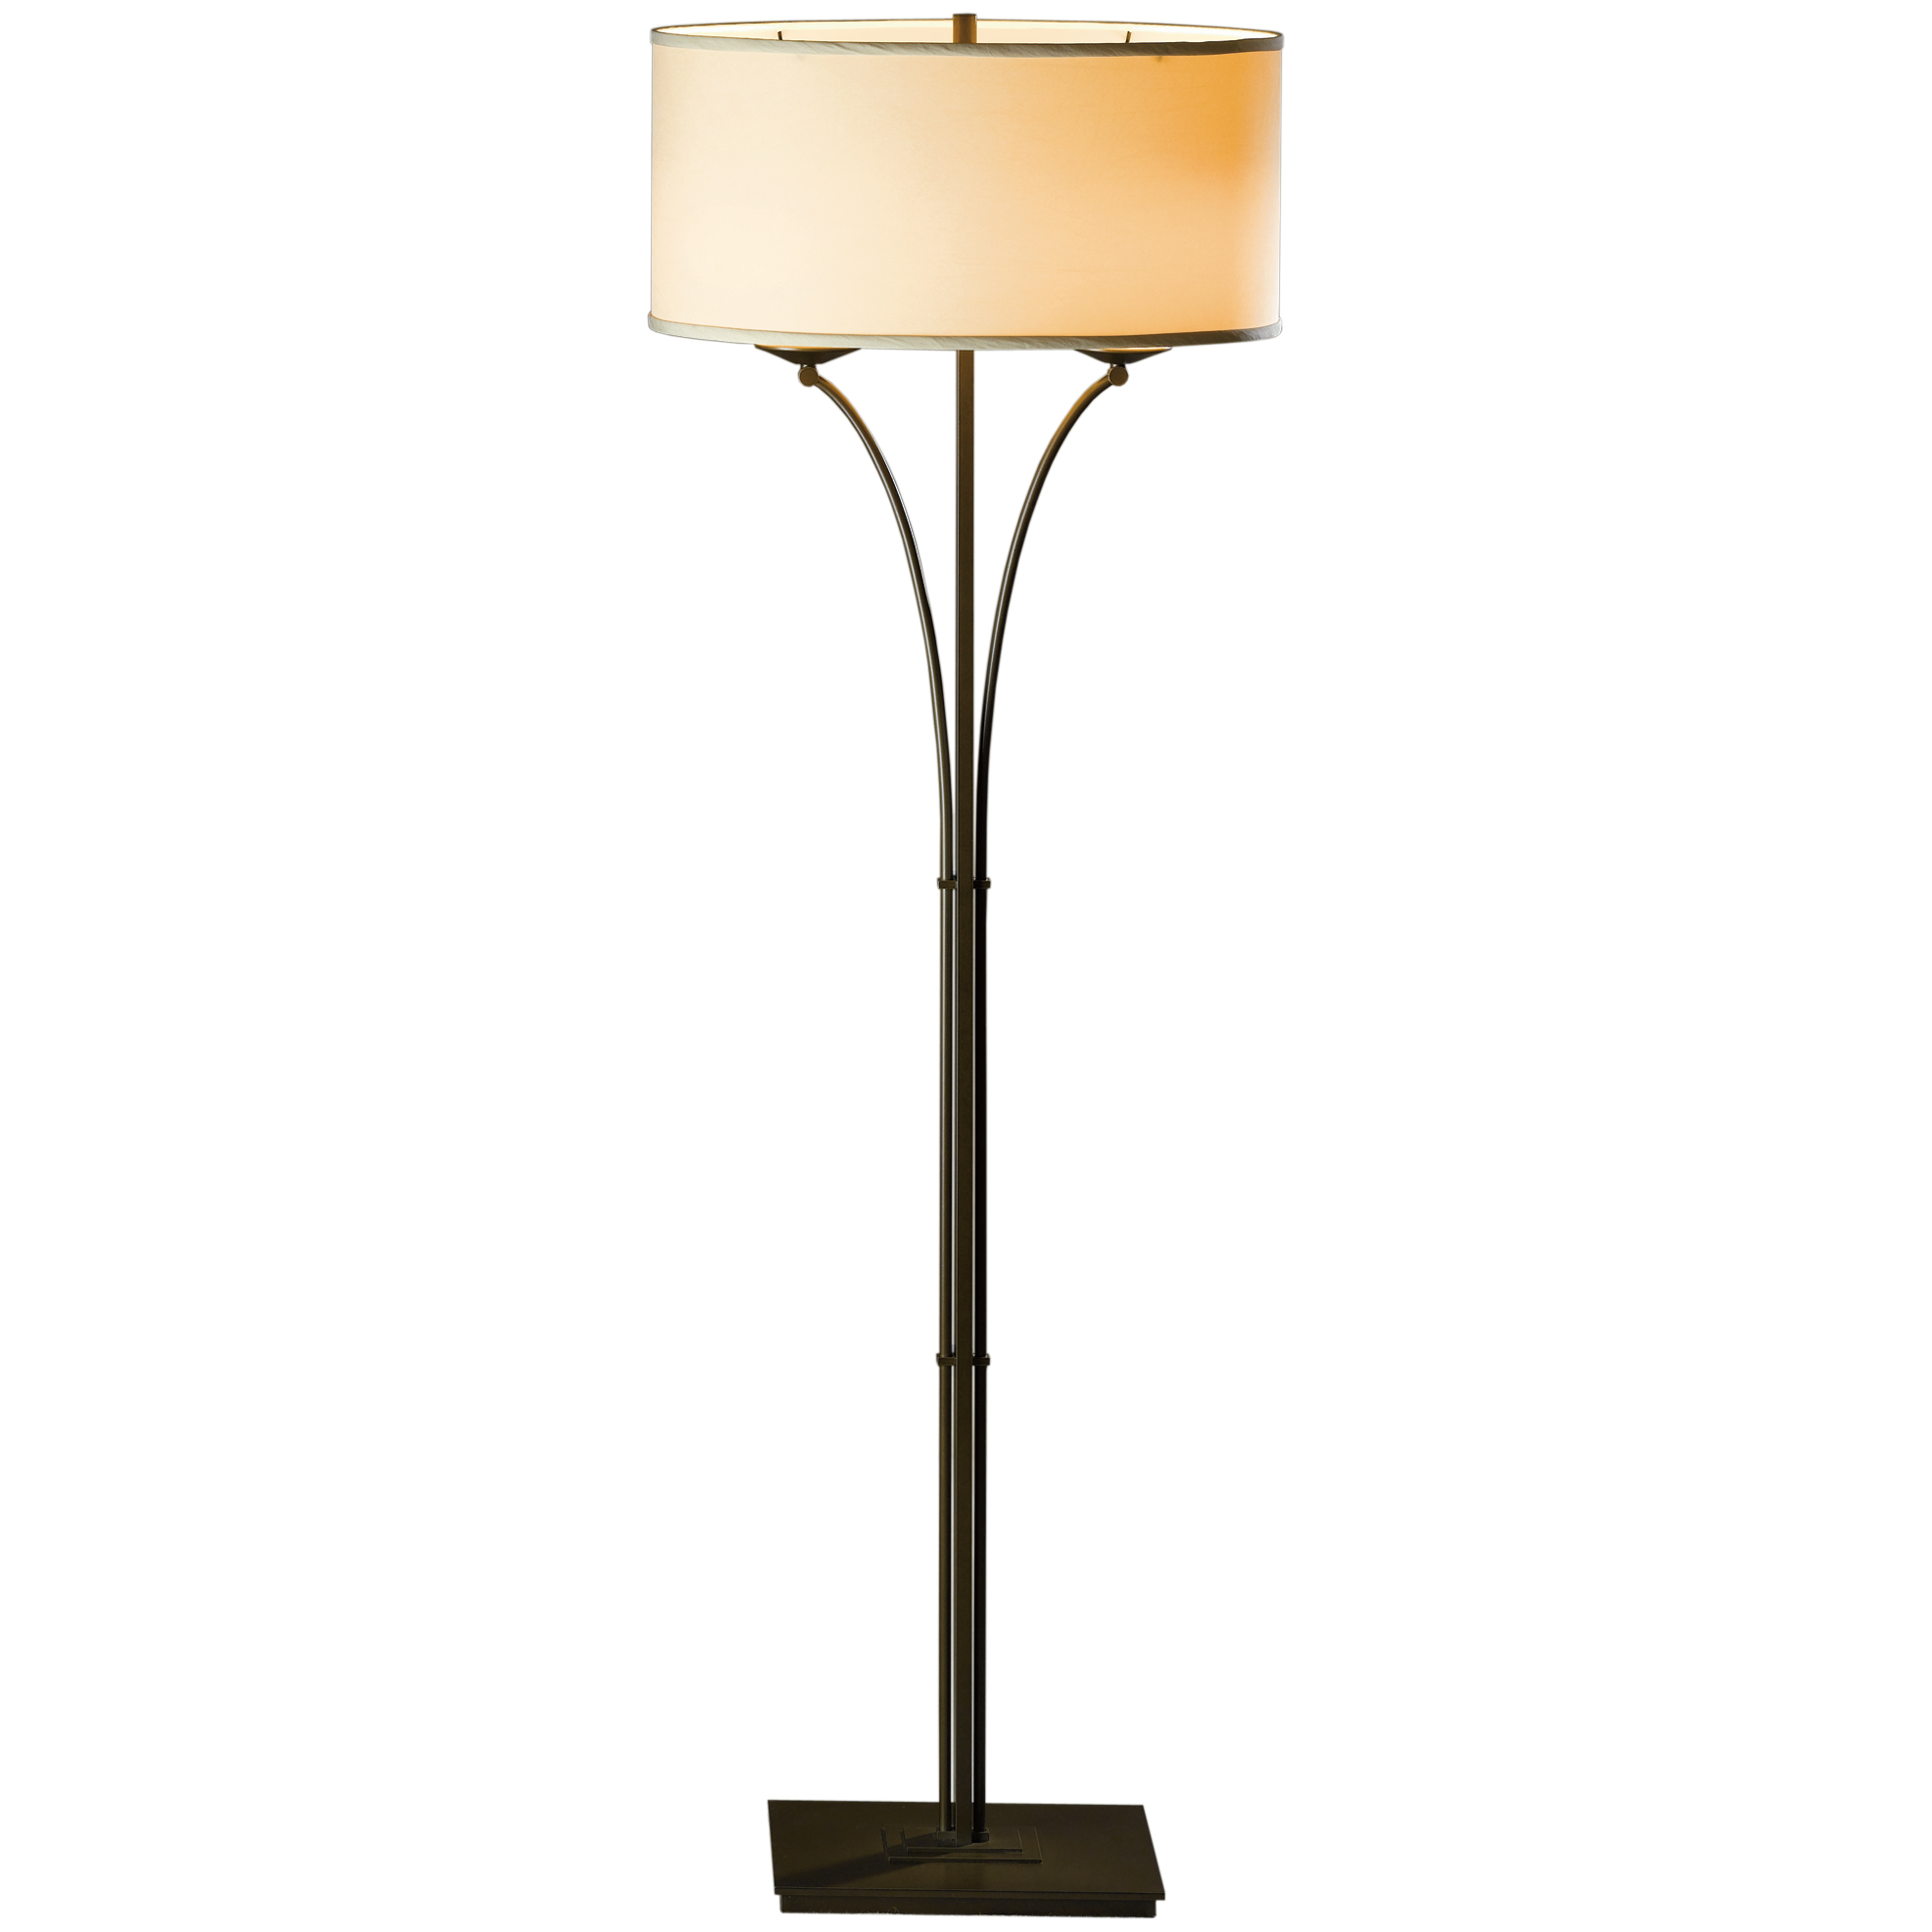 Contemporary formae floor lamp by hubbardton forge 232720 1005 contemporary formae floor lamp by hubbardton forge aloadofball Gallery